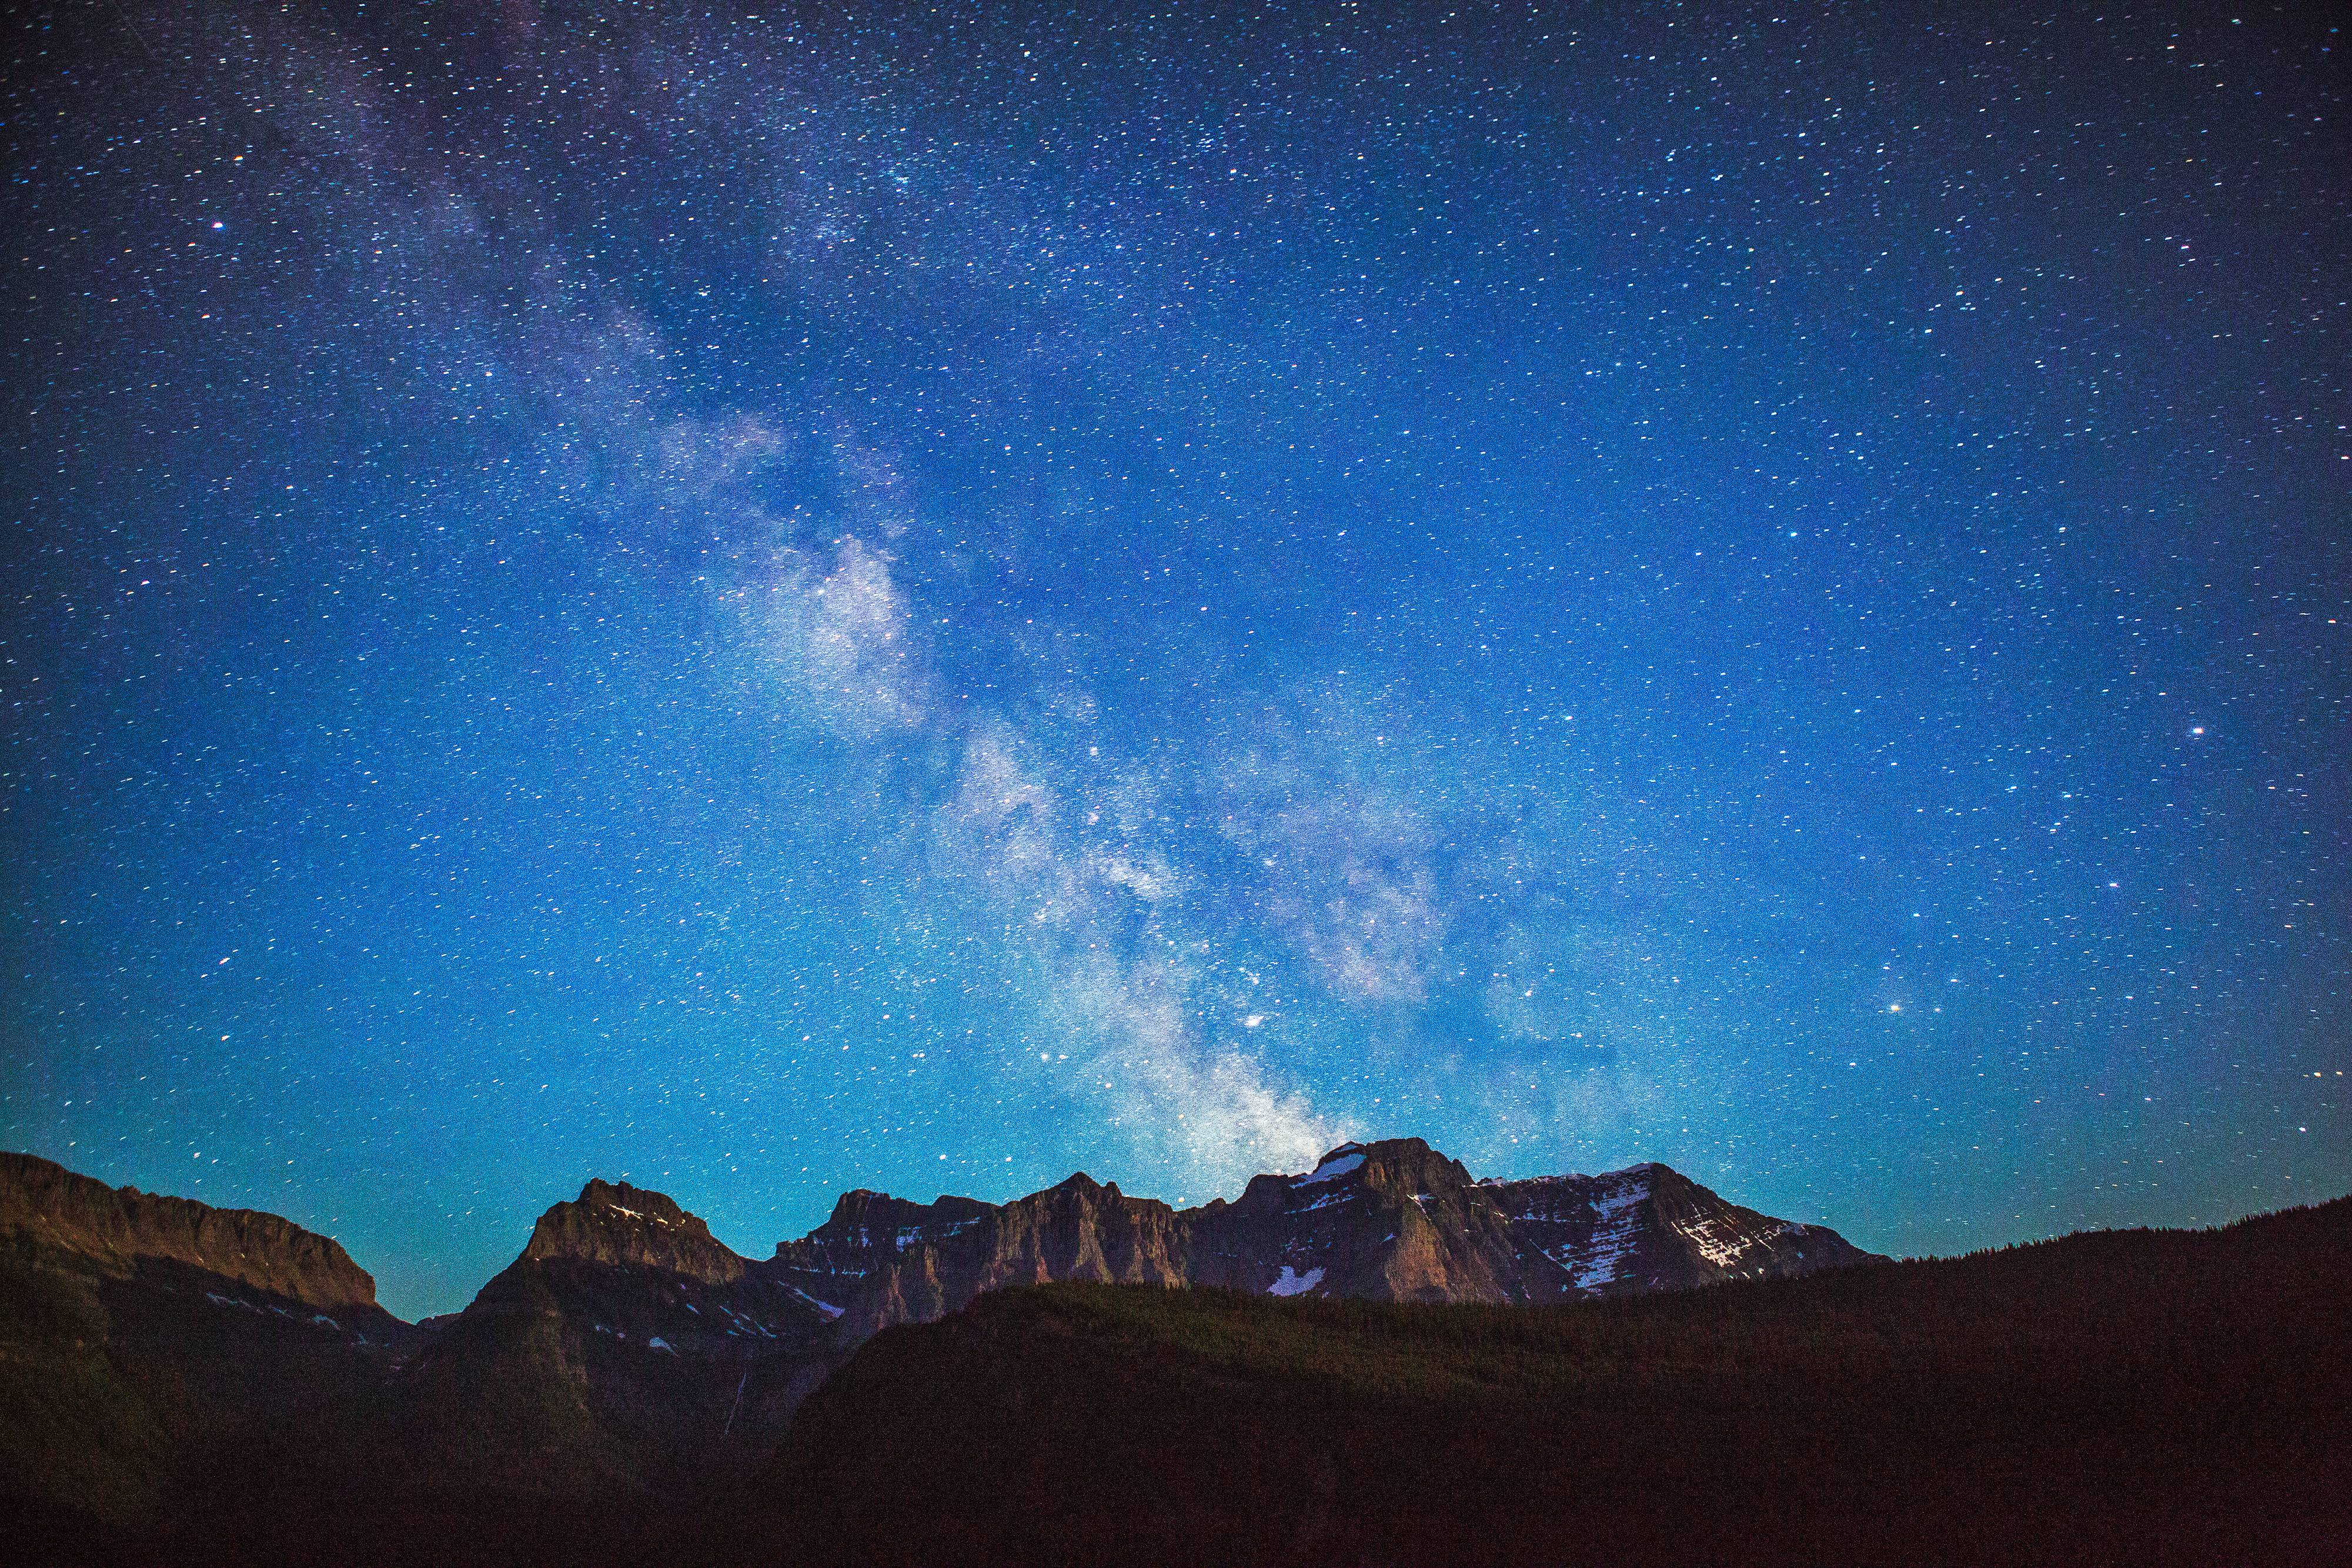 Glacier national park hd nature 4k wallpapers images backgrounds photos and pictures - Background images 4k hd ...